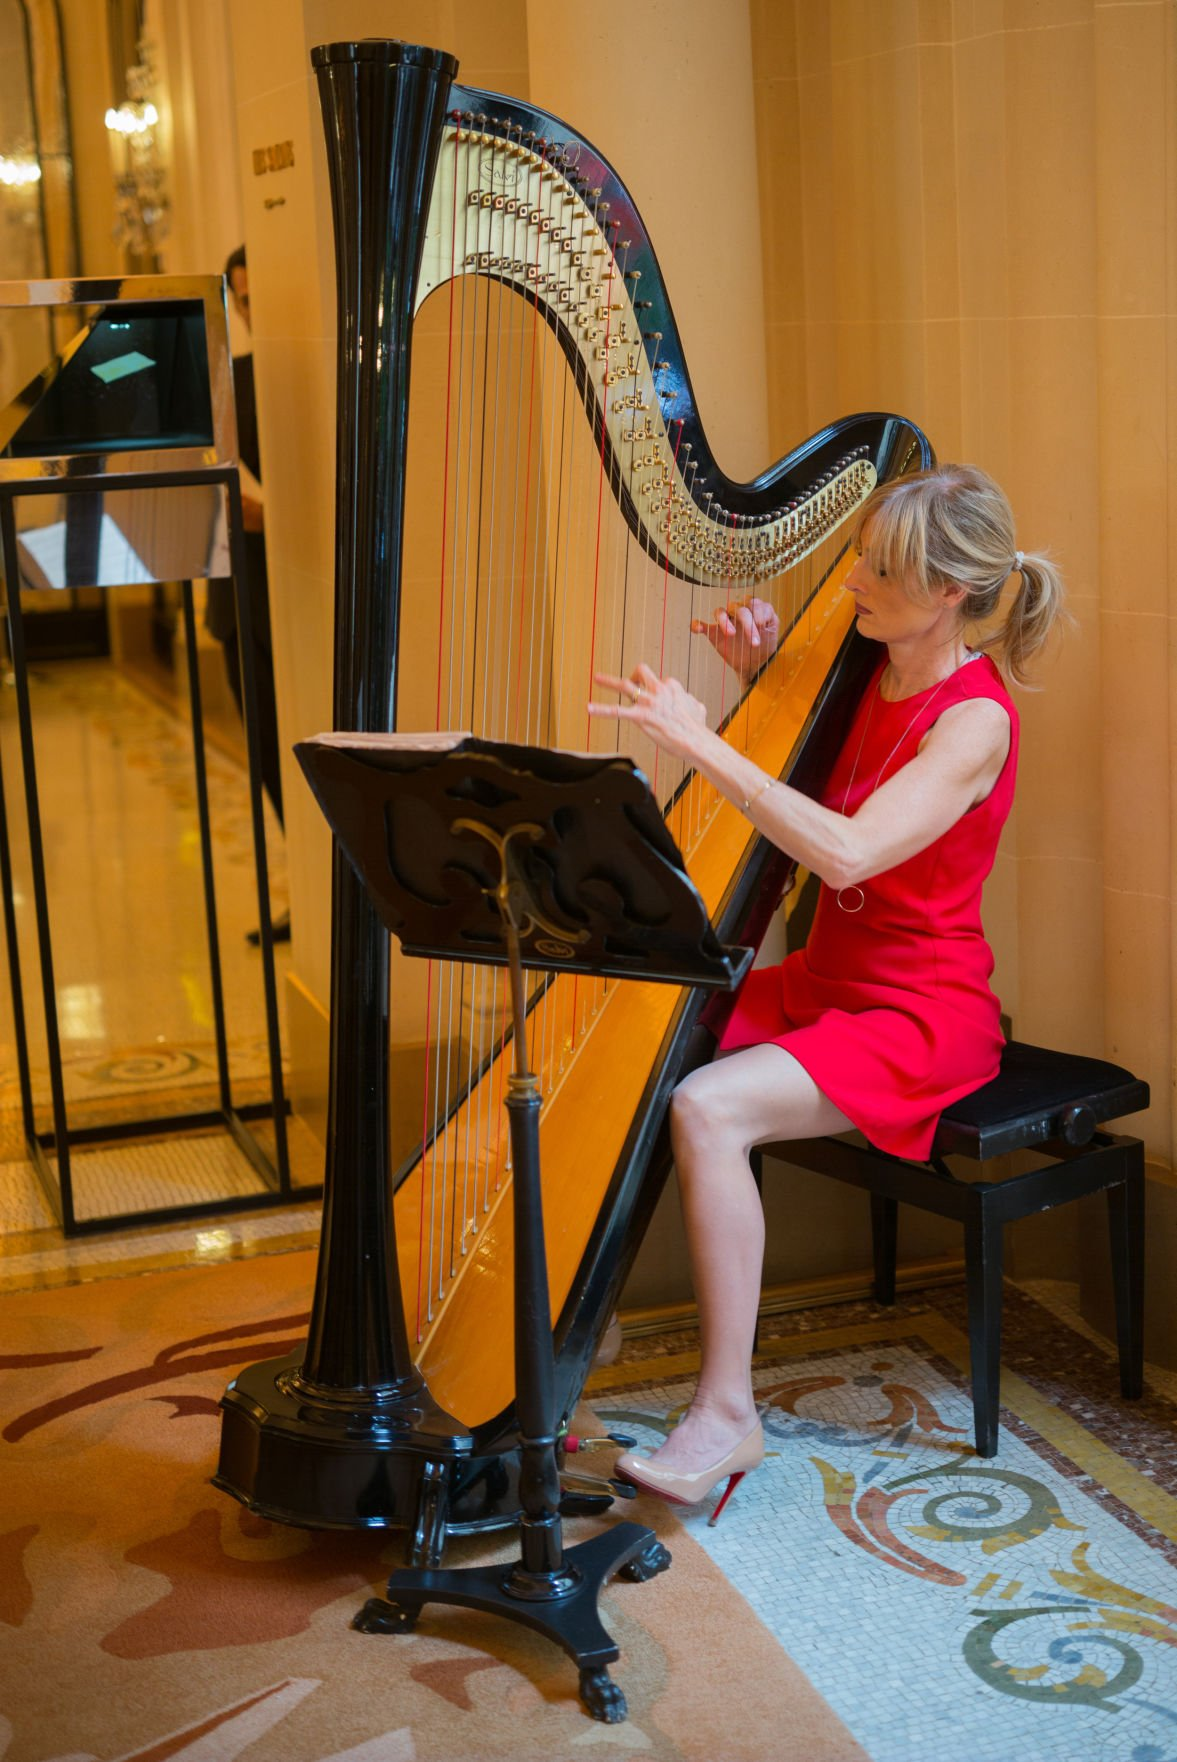 Hotel Plaza Athenee harpist plays inside La Galarie in the hotel lobby.